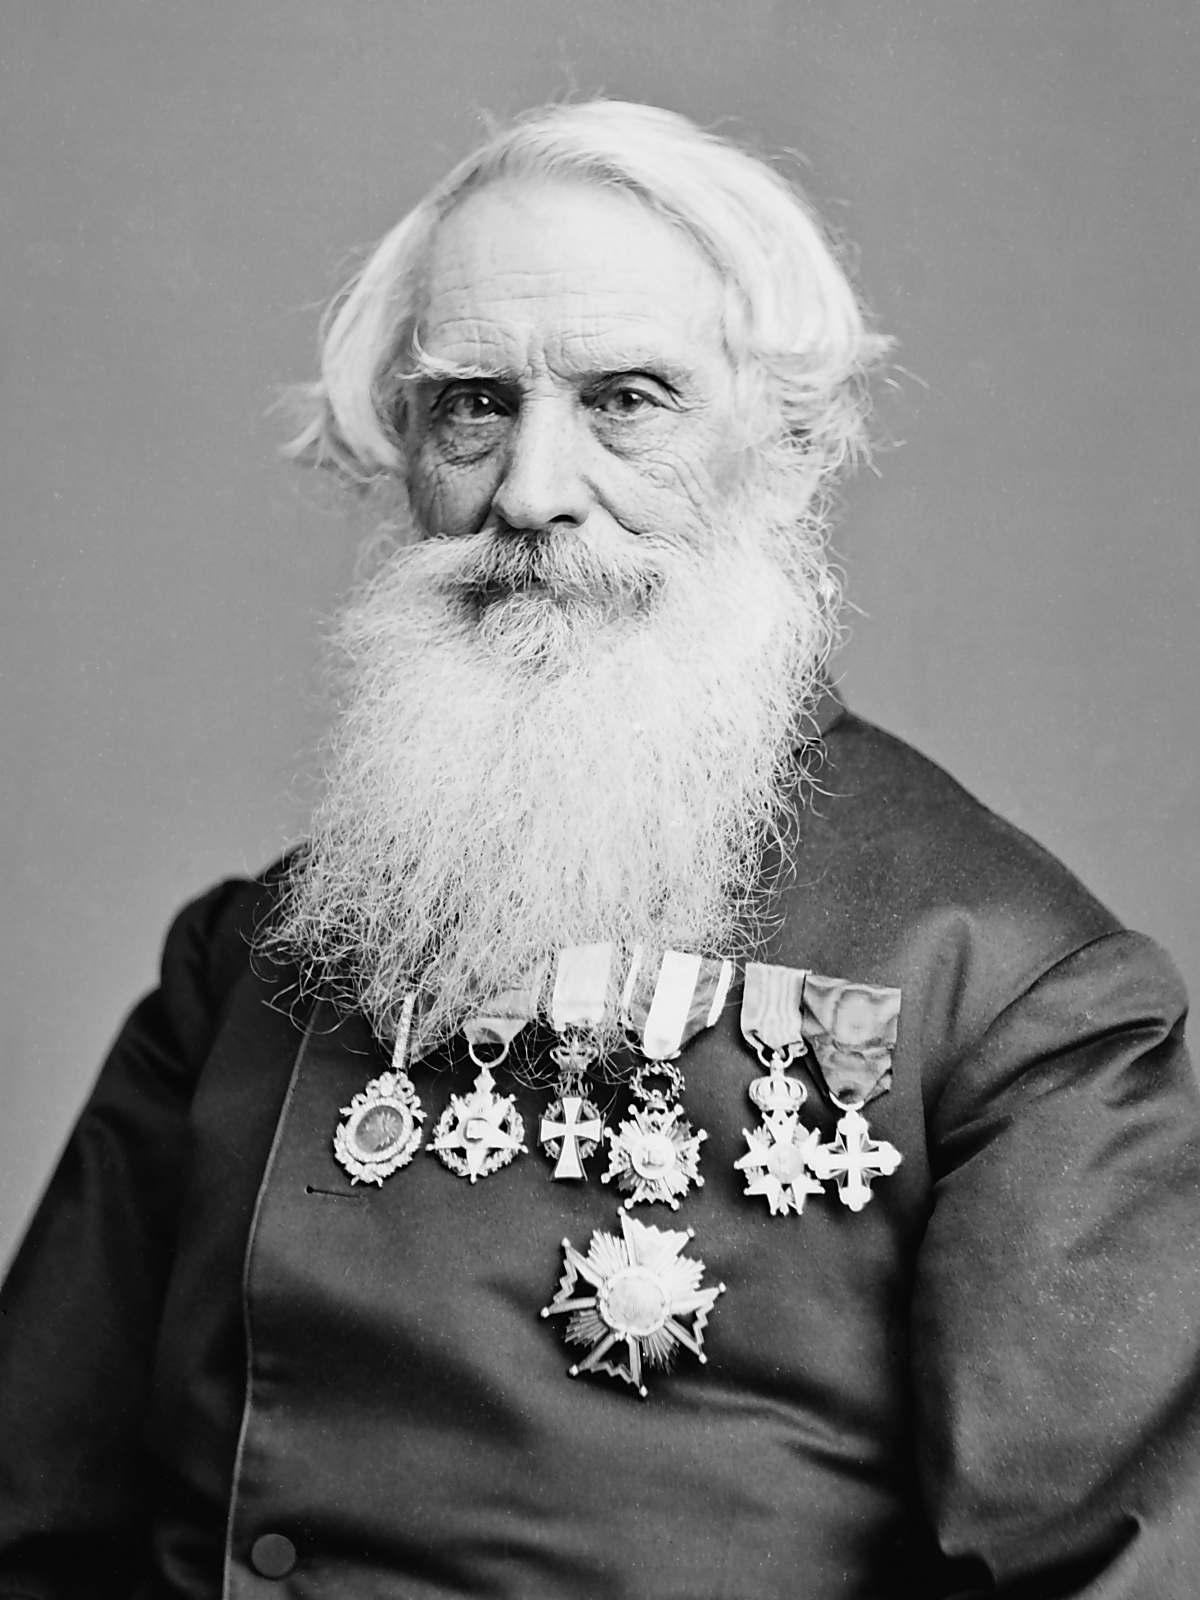 Image of Samuel Finley Breese Morse from Wikidata